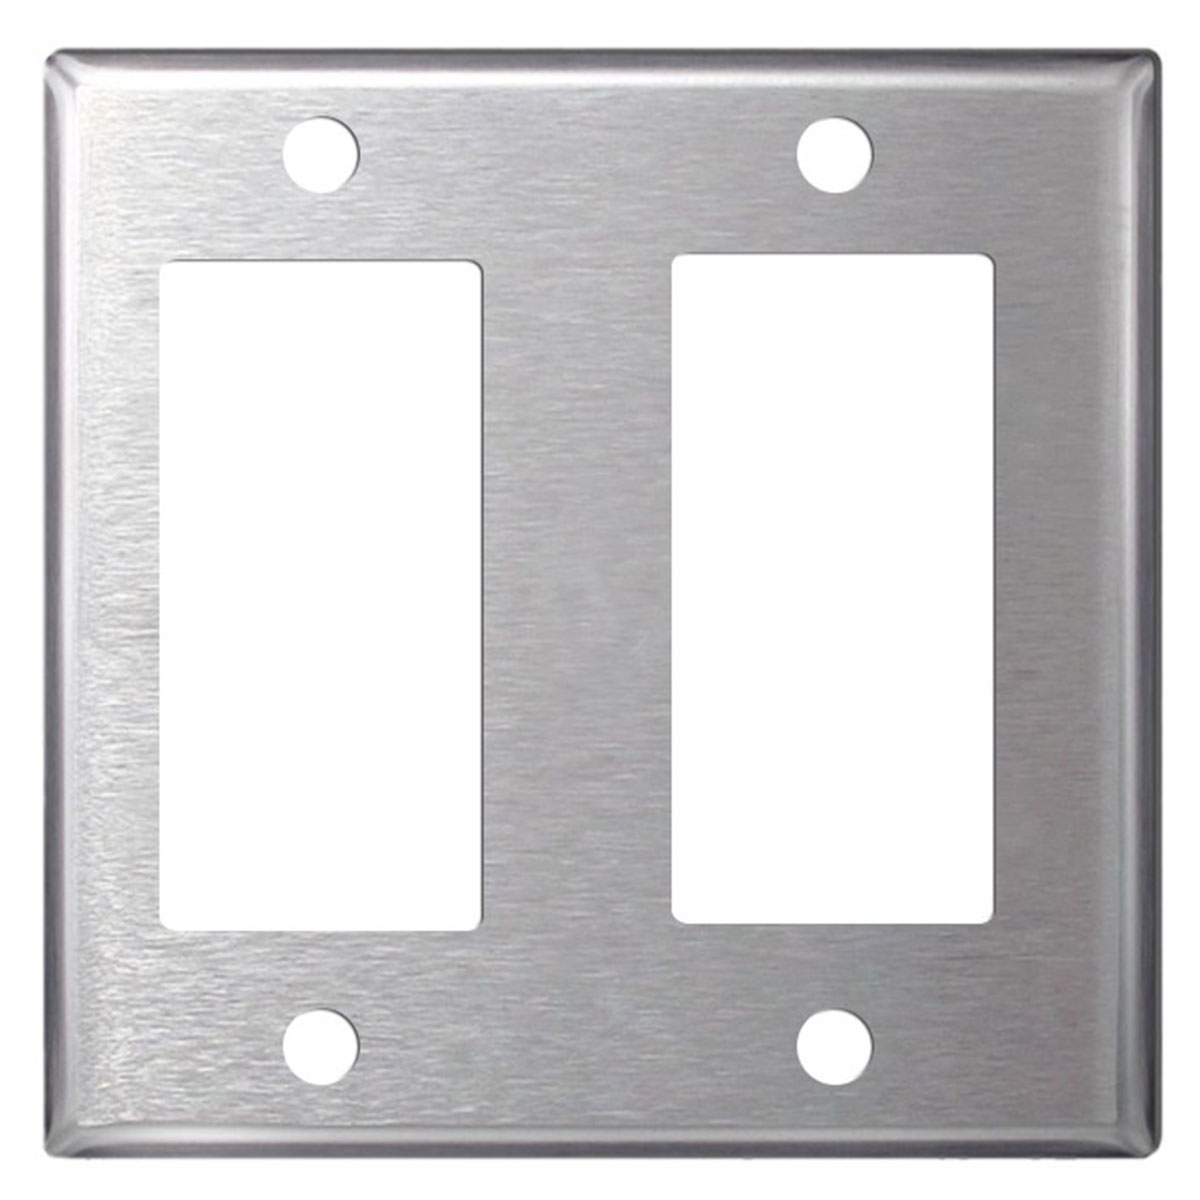 Blank Switch Plate Best Stainless Steel Wall Plates  Single Double Gang  Blank Toggle Design Inspiration